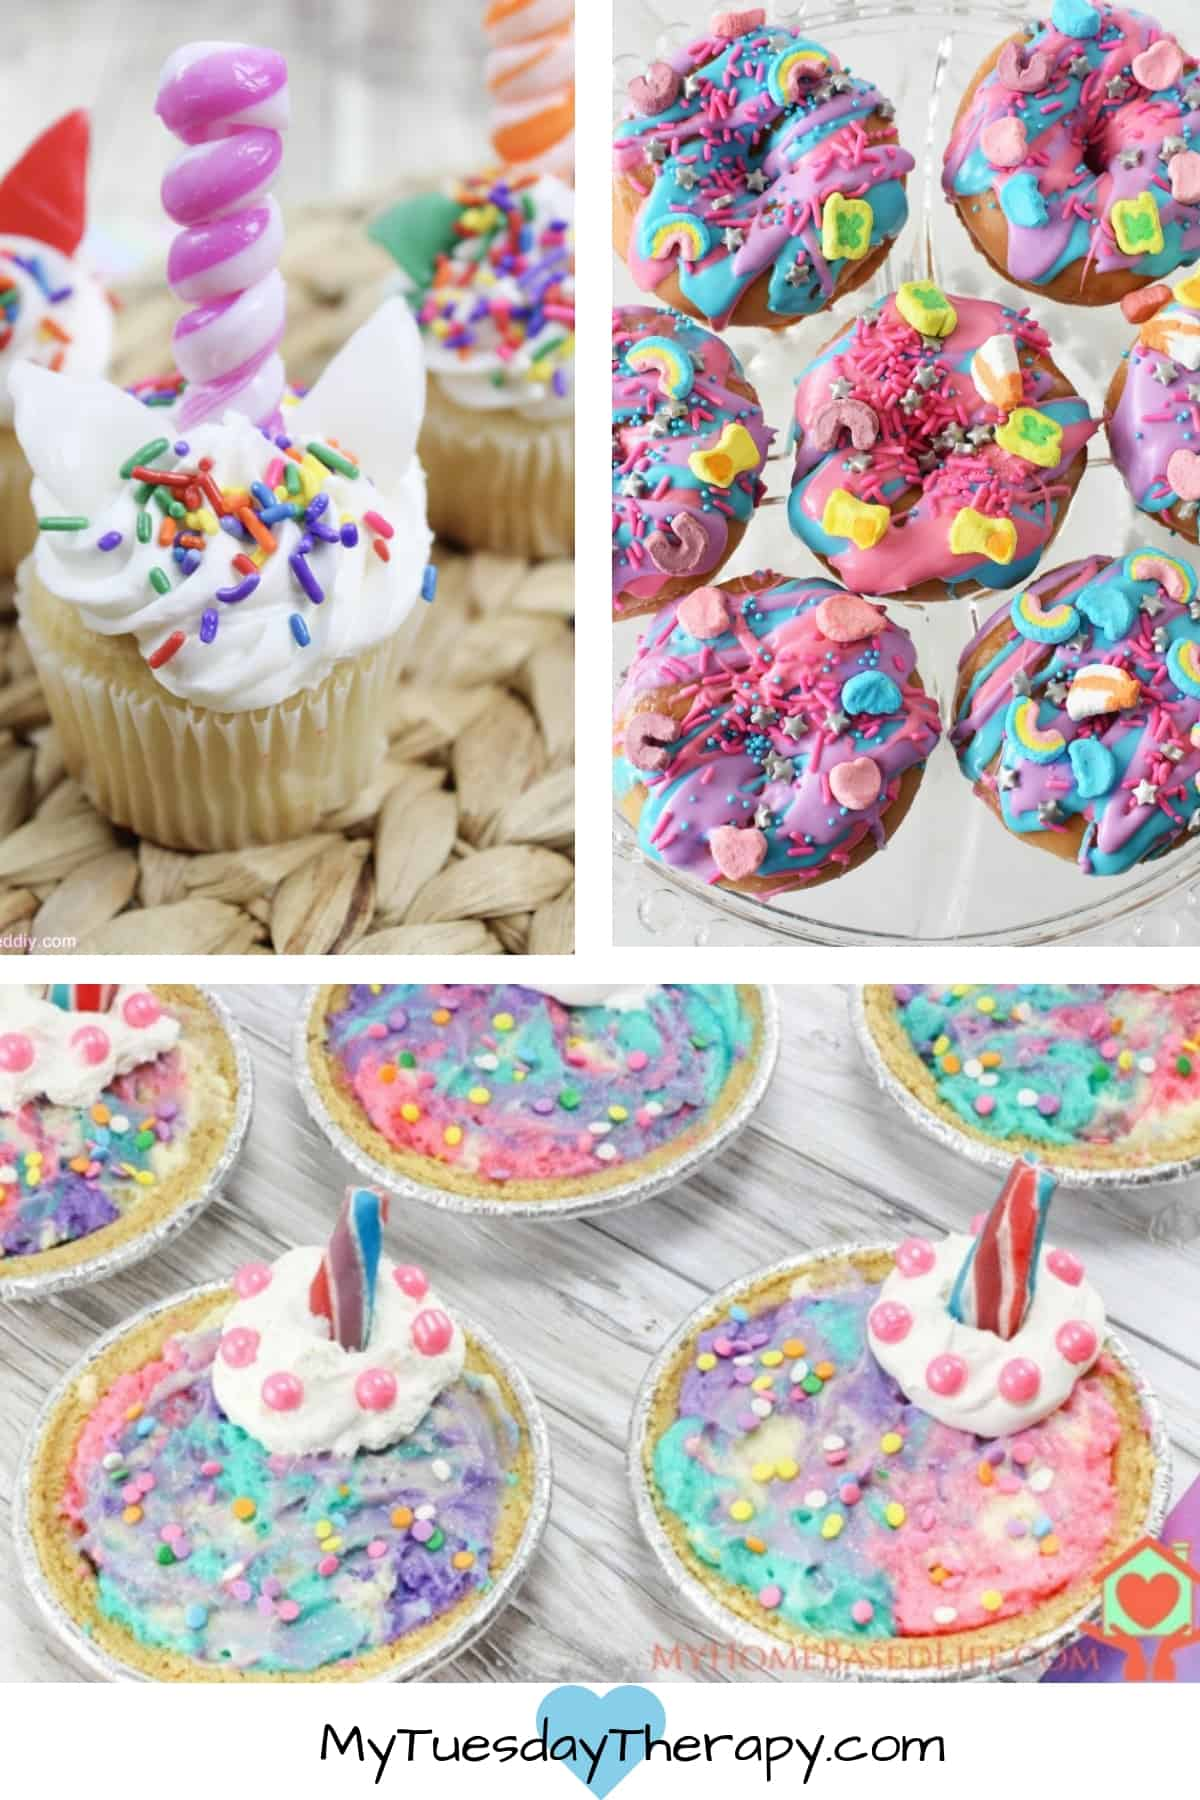 Unicorn Desserts: Unicorn Cupcake with and edible horn, Unicorn Donuts, and Unicorn Cheesecake.